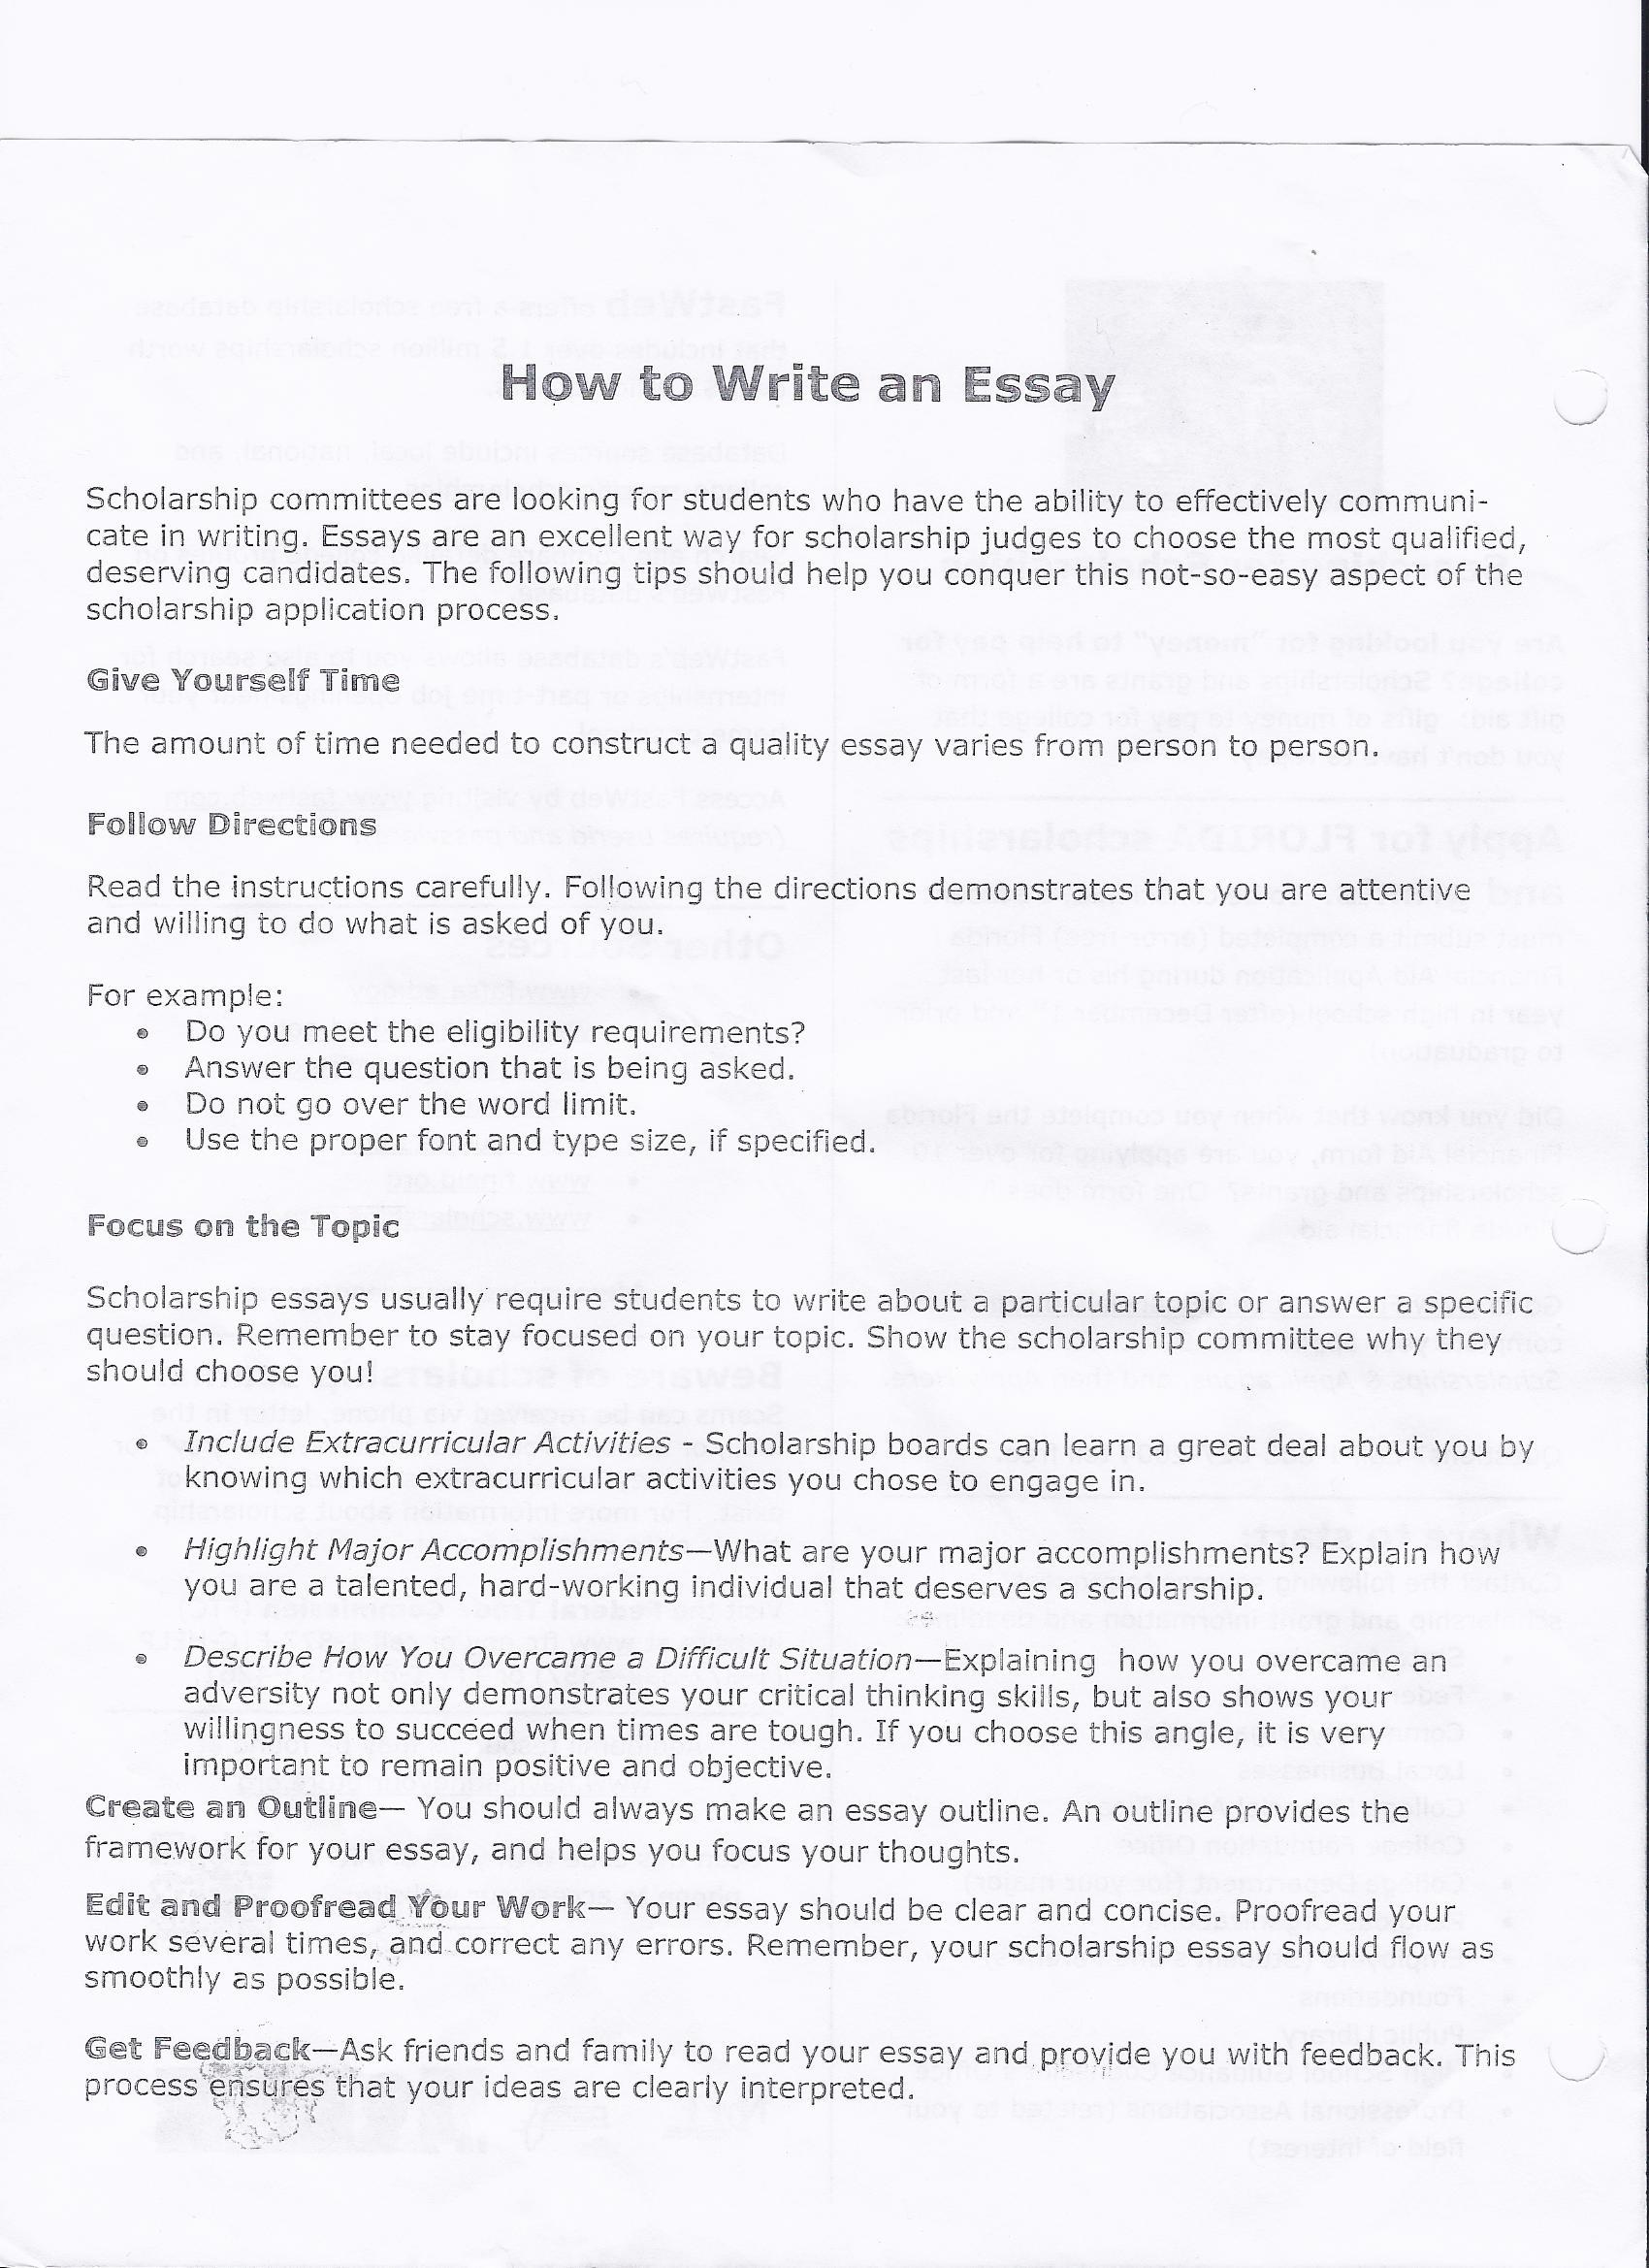 Sample Essay On Different Topics In Research